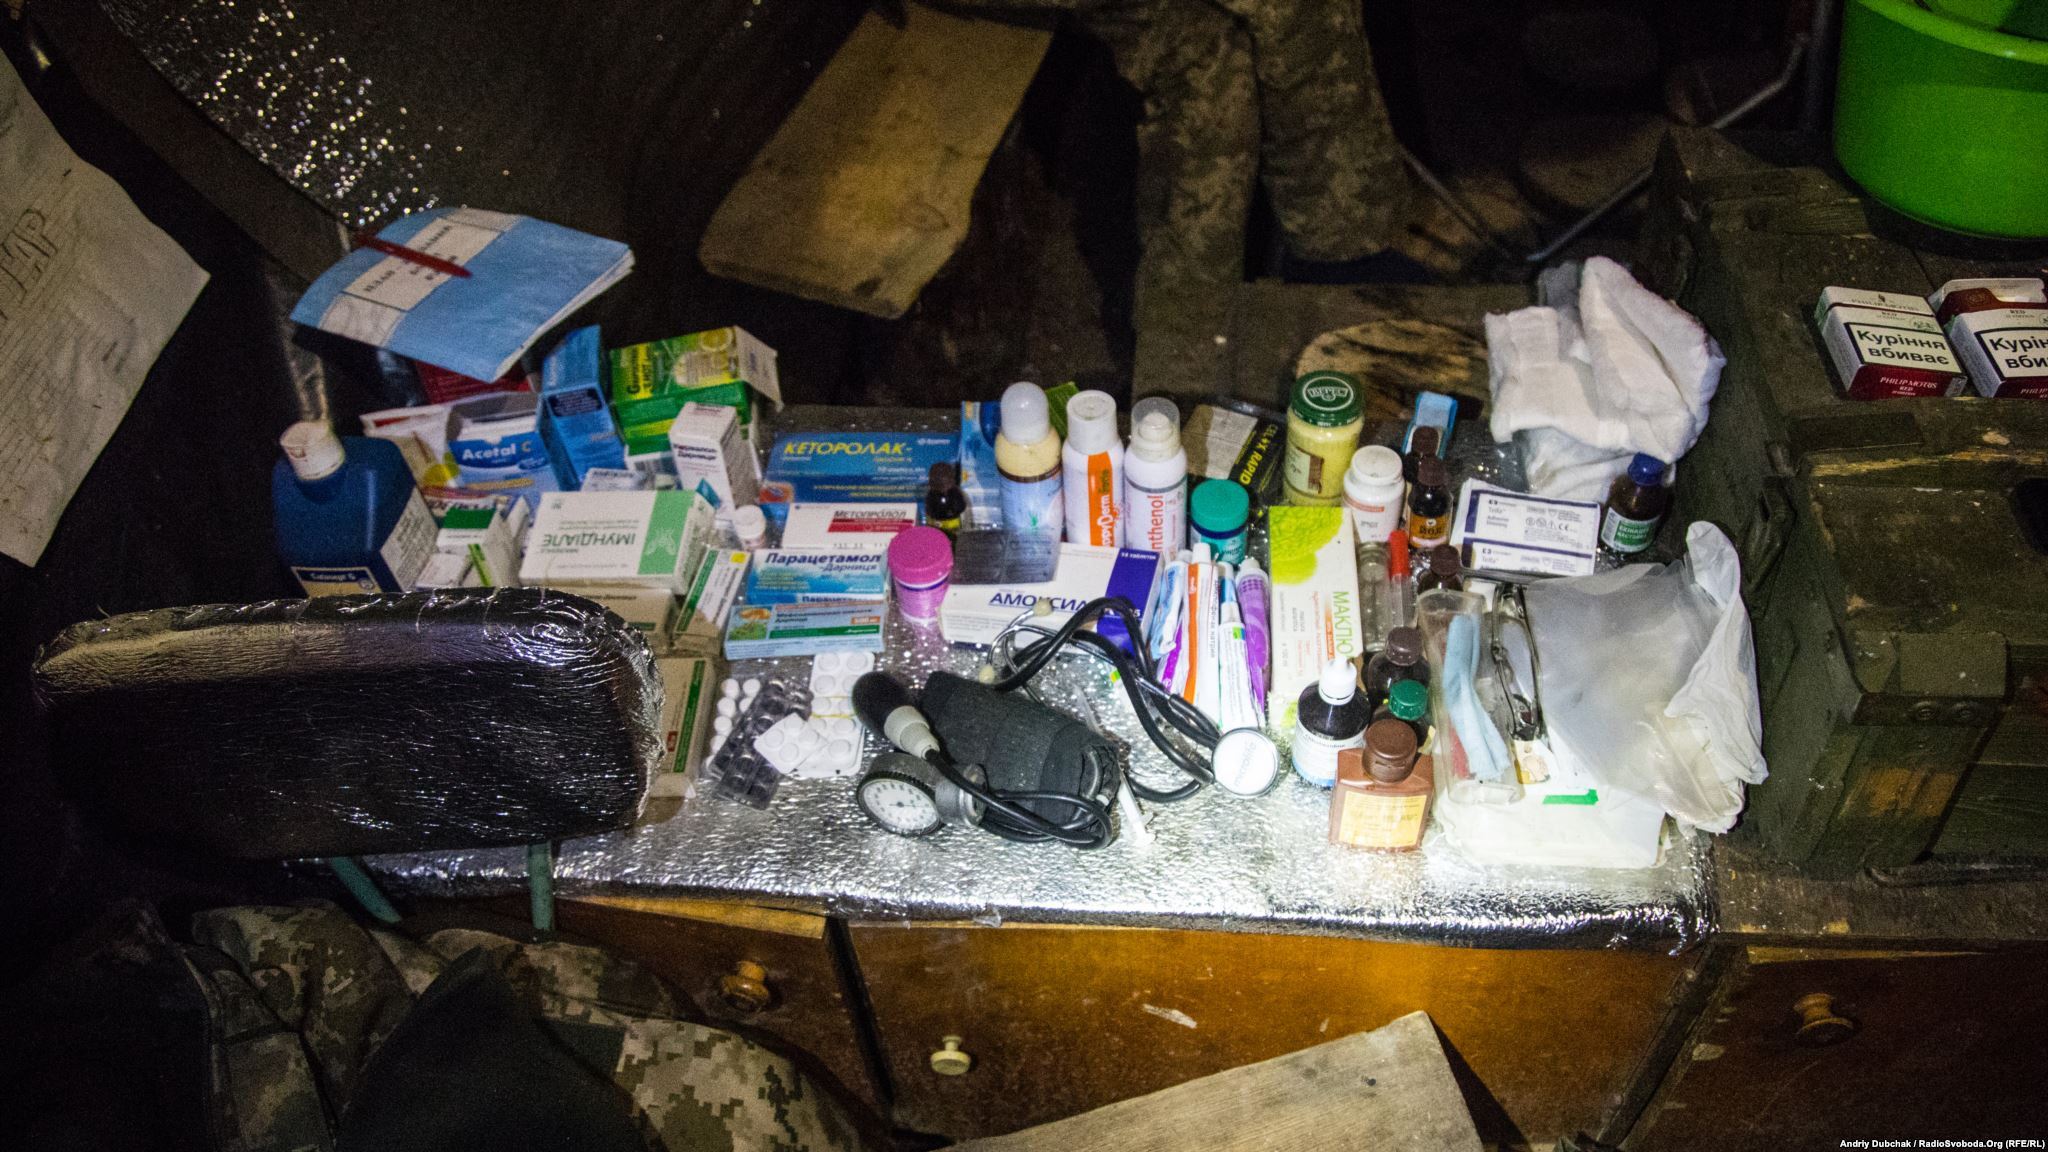 Medical supplies in a dugout-kitchen-sleeping room. Here is pretty much everything that needed - common cold-flu medicines and special medications for treating serious combat injuries (photo by ukrainian military photographer Andriy Dubchak)